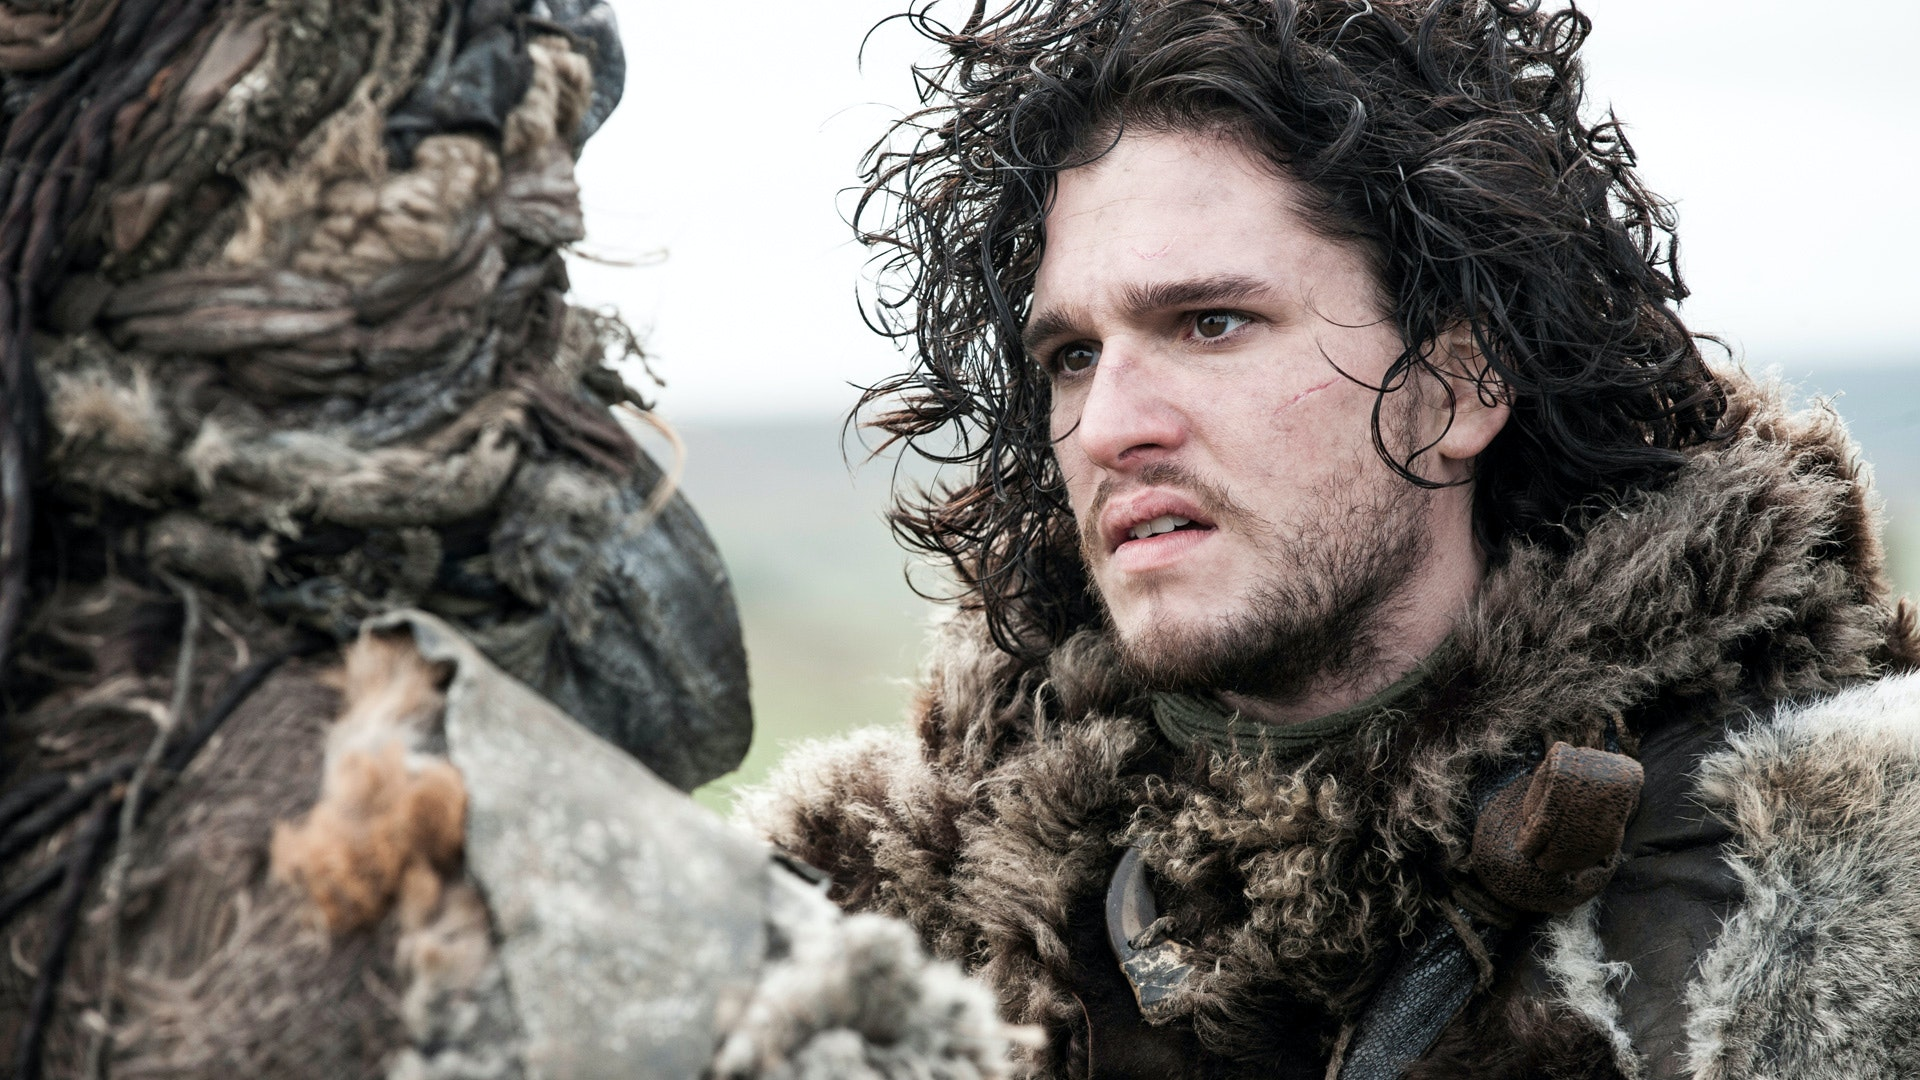 Fantastic A Brief History Of Jon Snows Hair In Game Of Thrones Inverse Hairstyles For Men Maxibearus